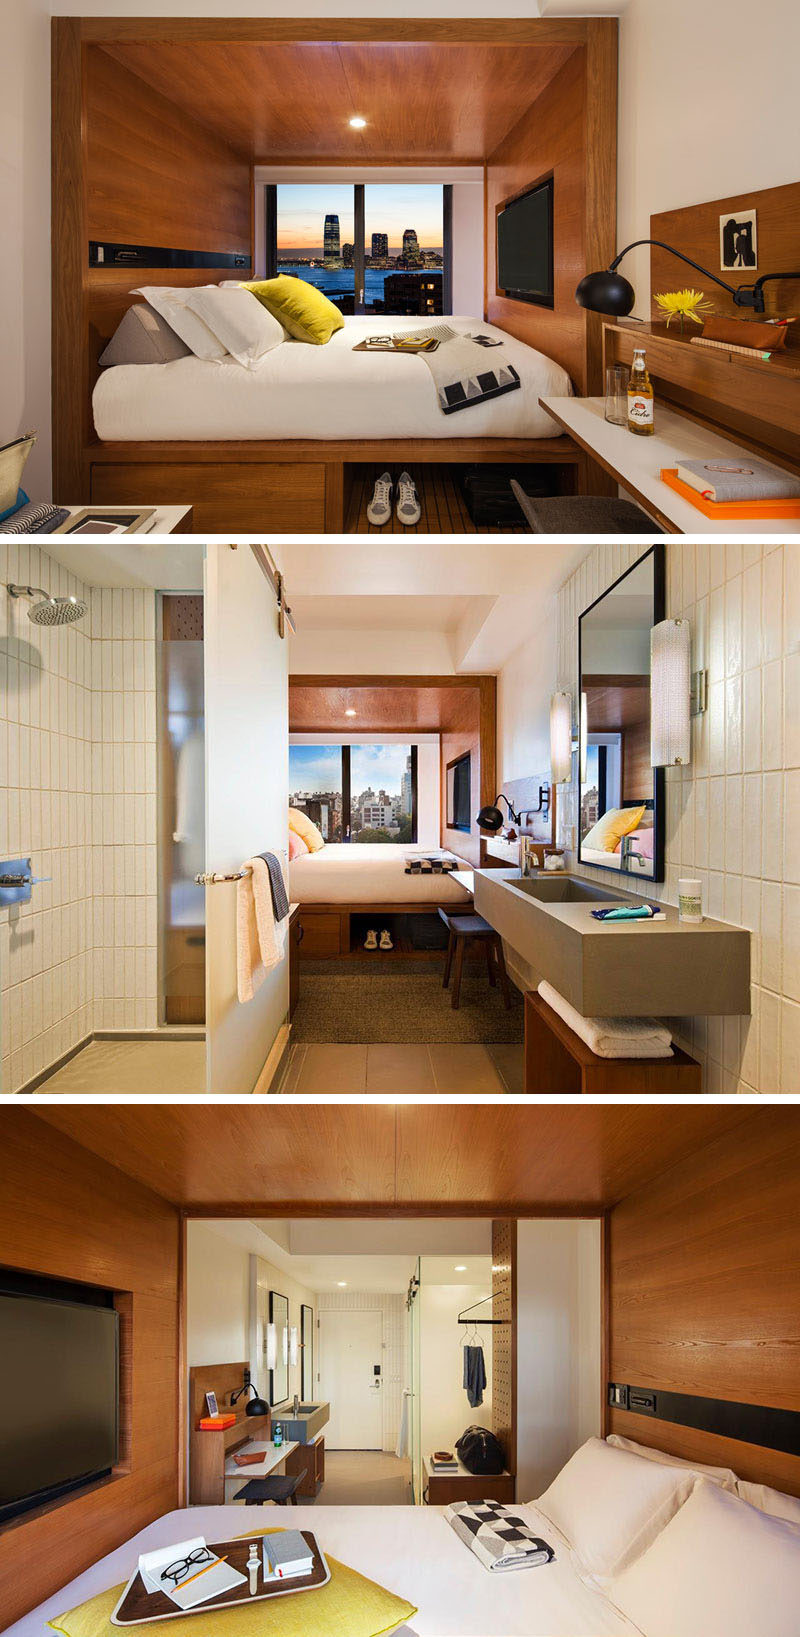 Small hotel rooms that maximize their tiny space contemporist